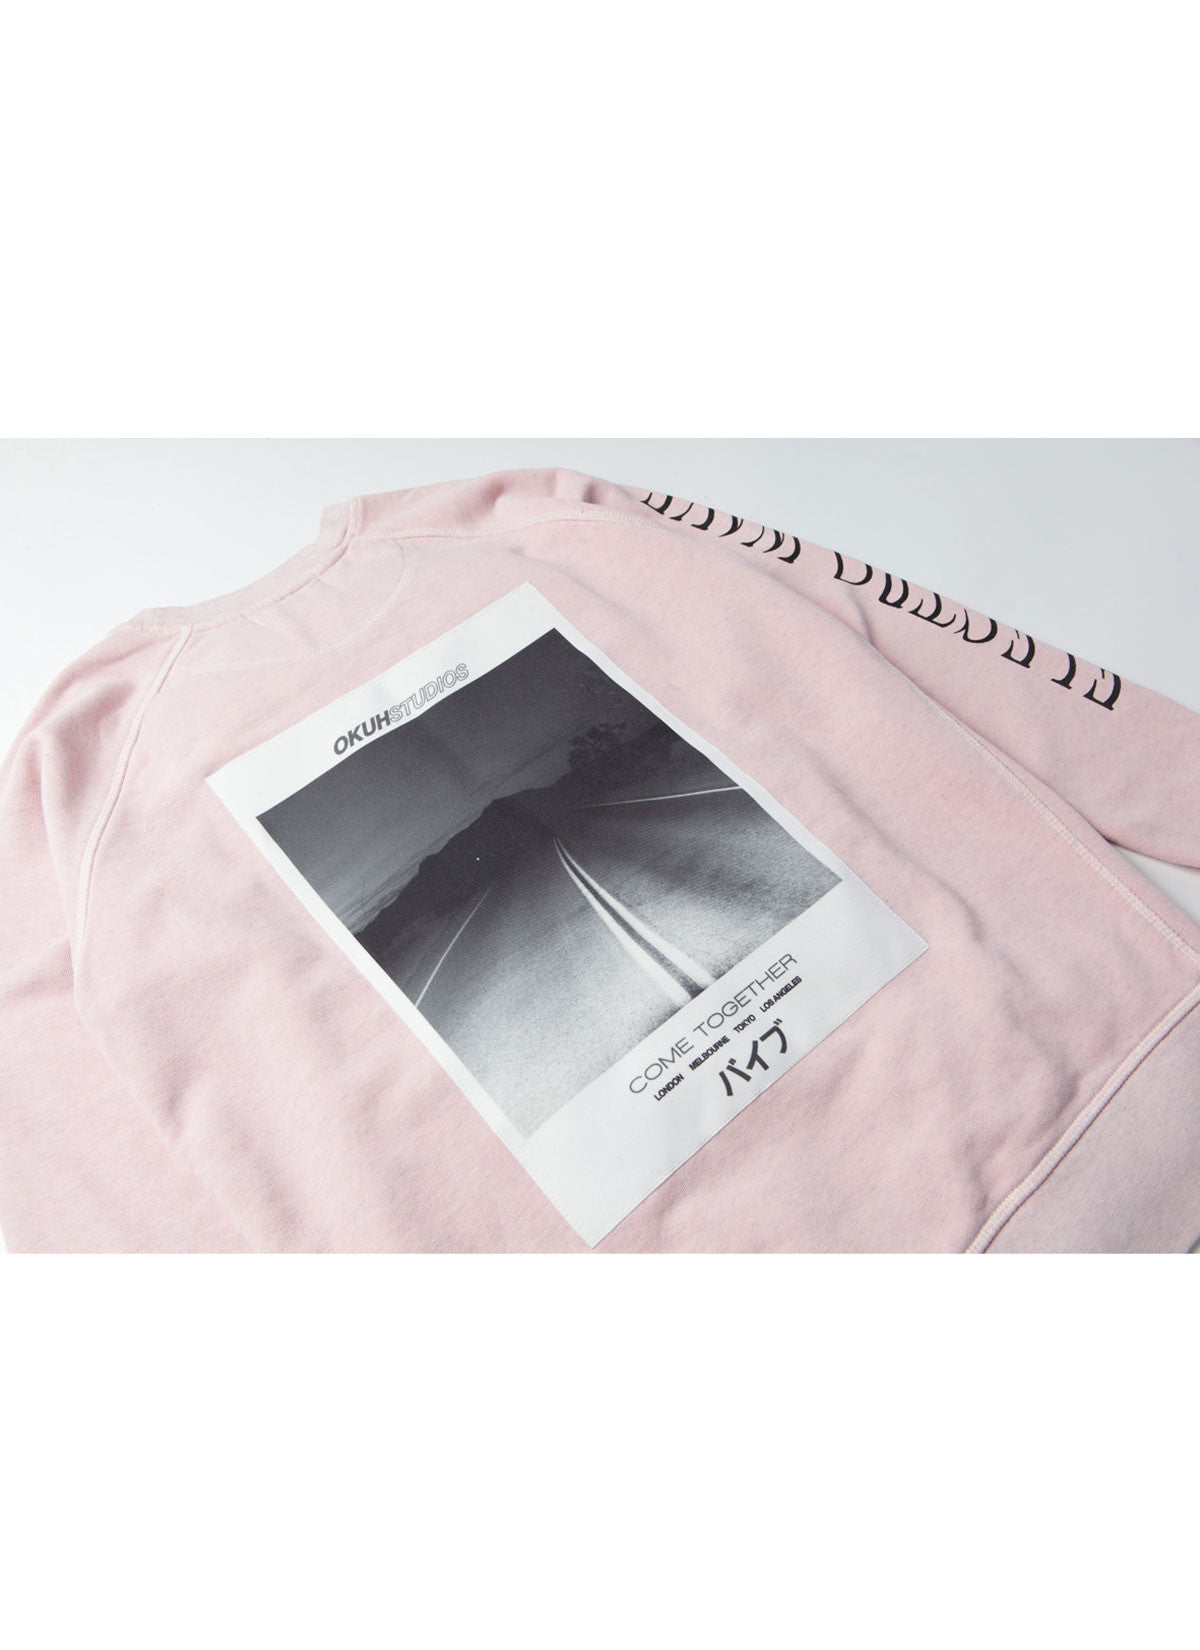 Electrowave Pink Sweatshirt by Okuh Studios, mens streetwear fashion brand, Back close up